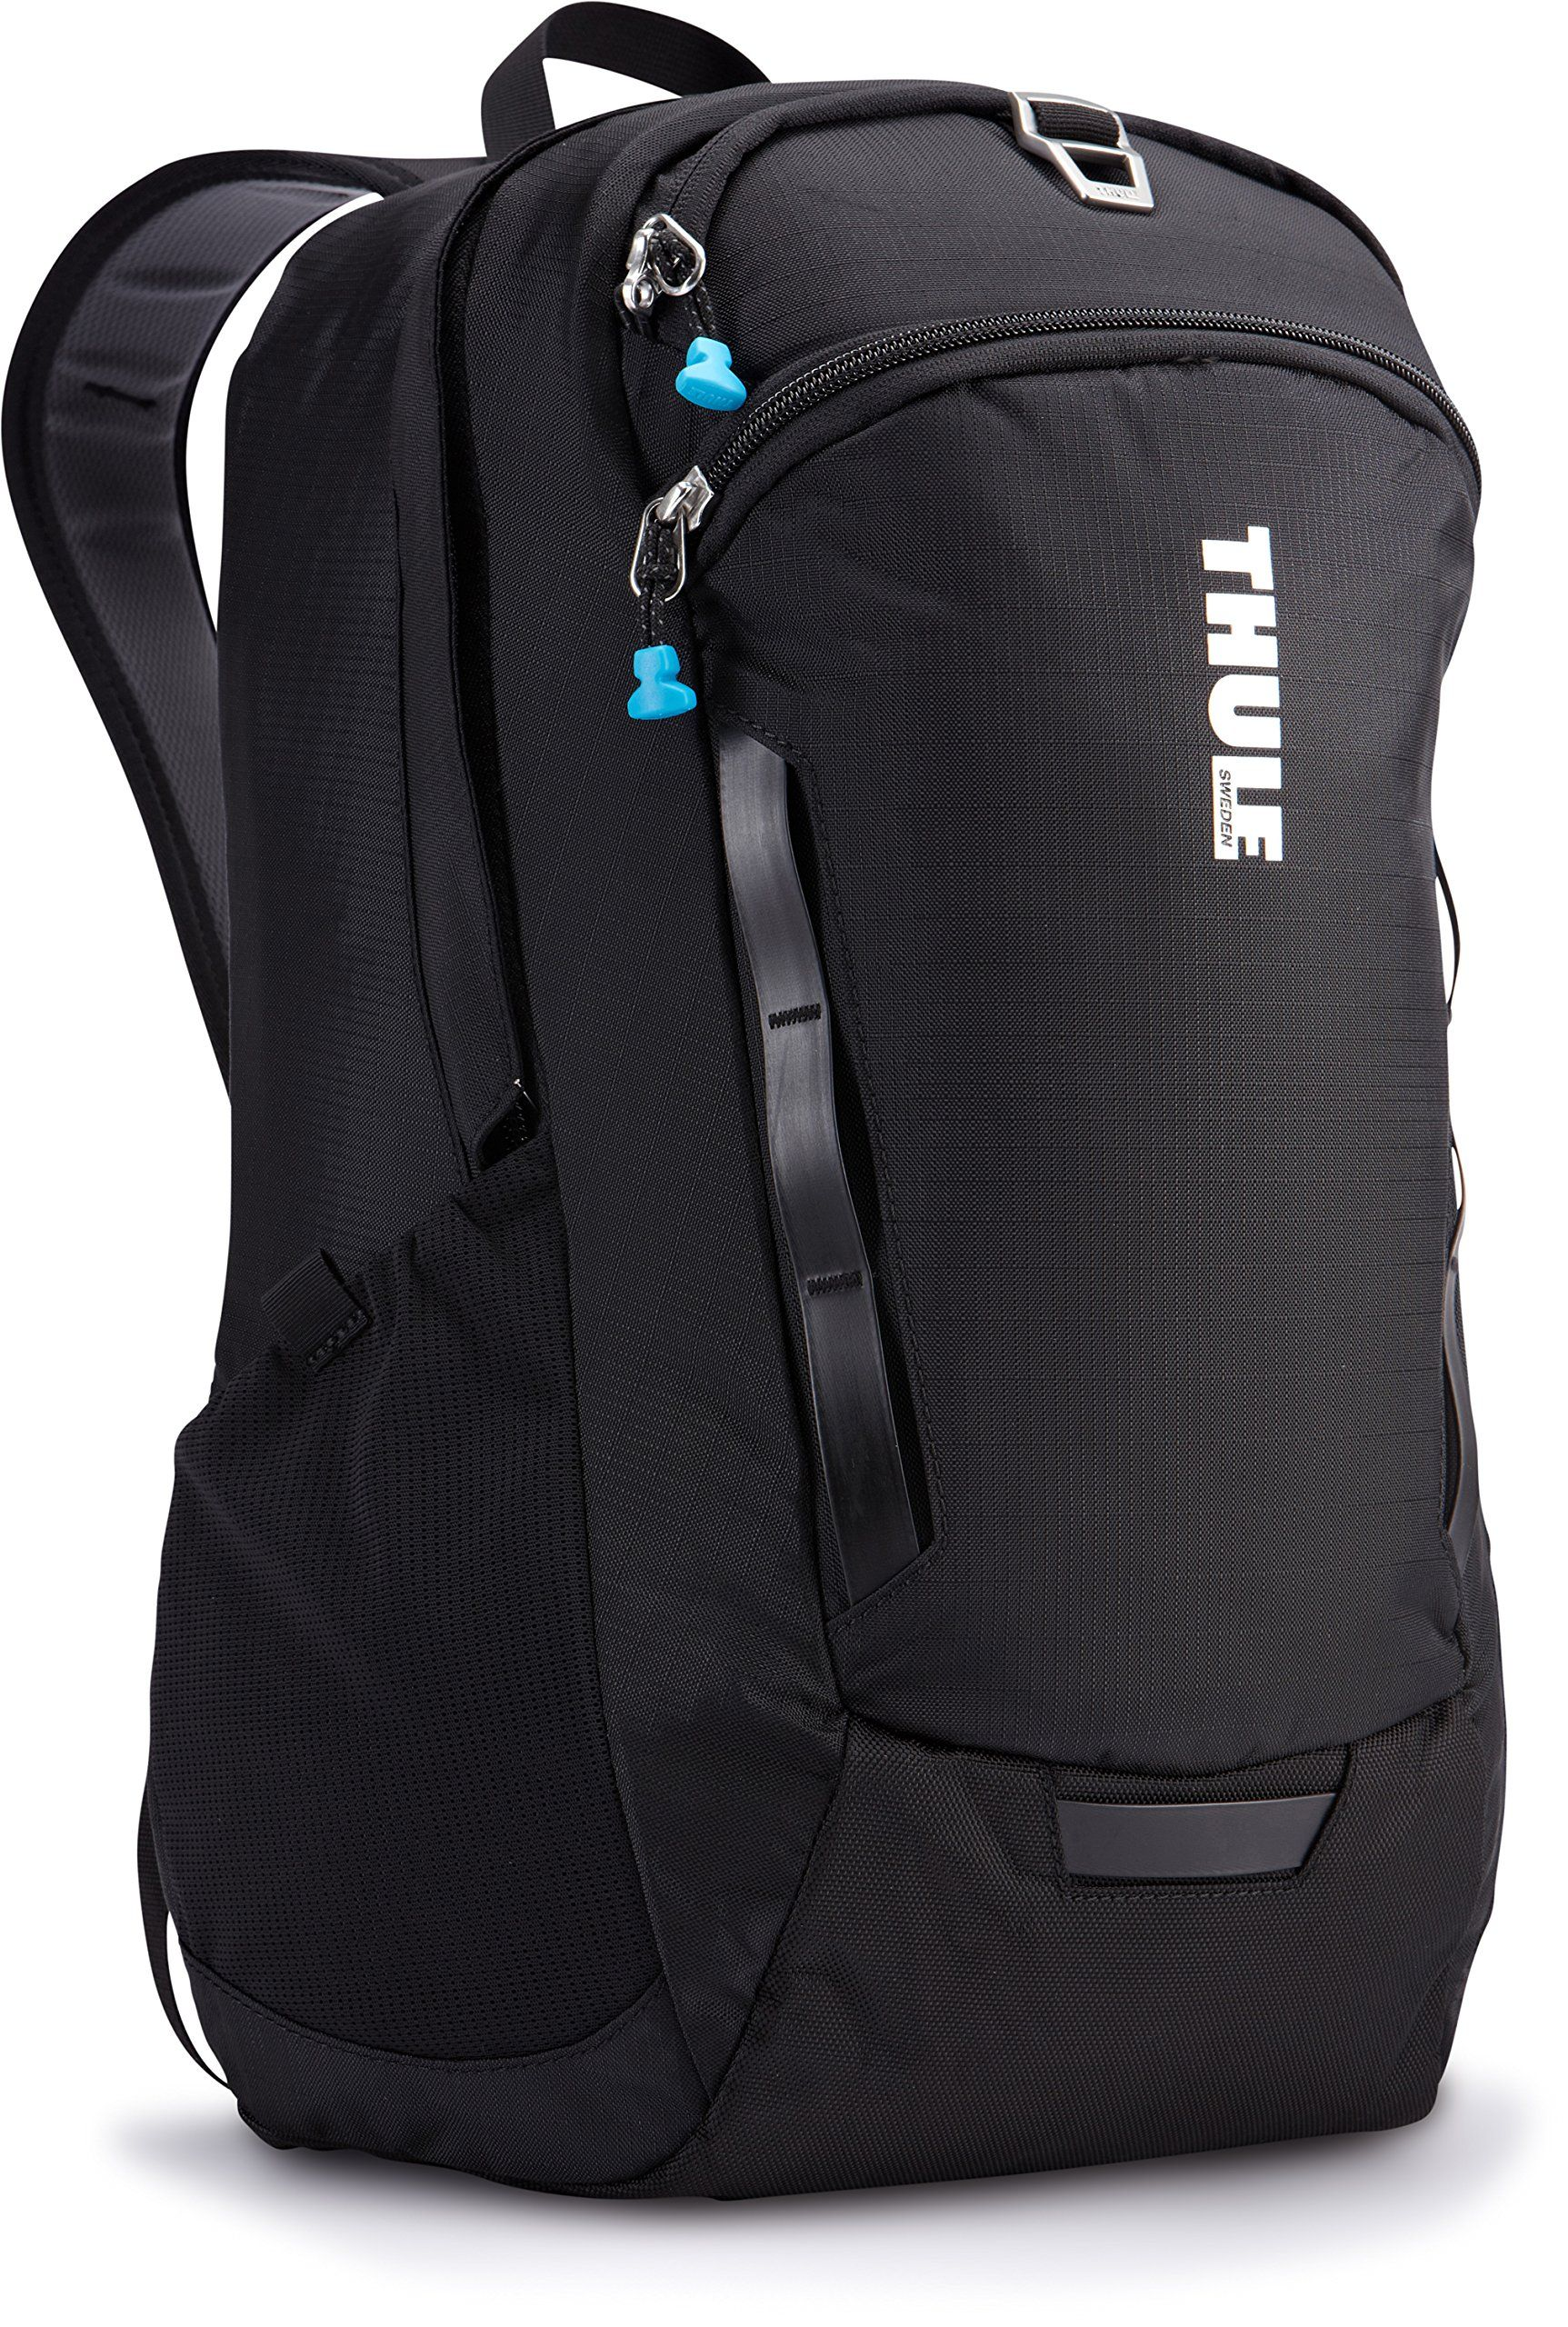 471ad27a81 Thule EnRoute Strut Daypack for 15-Inch MacBook Pro and 10-Inch Tablets -  Dark Shadow -  backpack